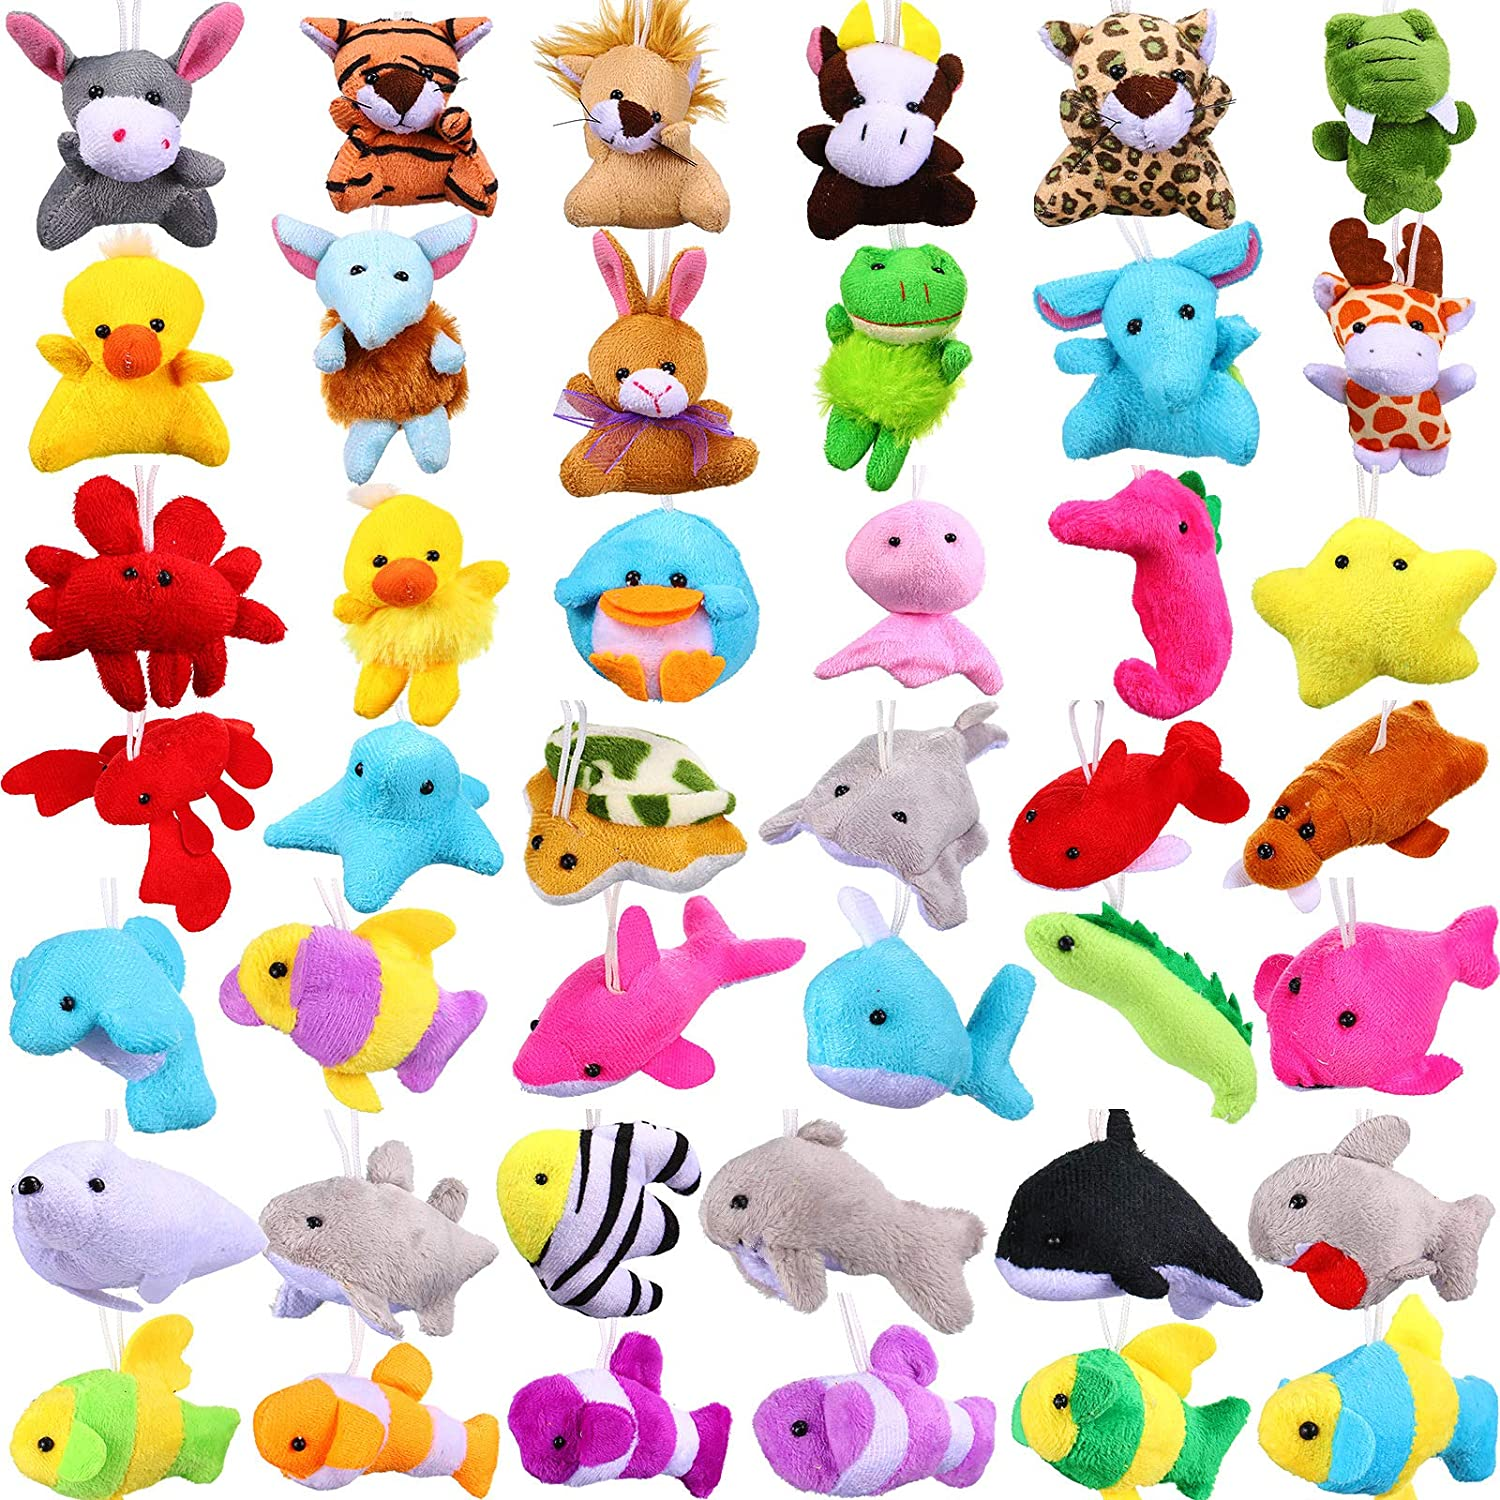 42 Pieces Mini Plush Animals Toys Set, Cute Small Stuffed Animal Plush Keychain Decorations for Themed Party Favors, Carnival Prizes, Classroom Rewards, Goody Bags Filler for Boys Girls